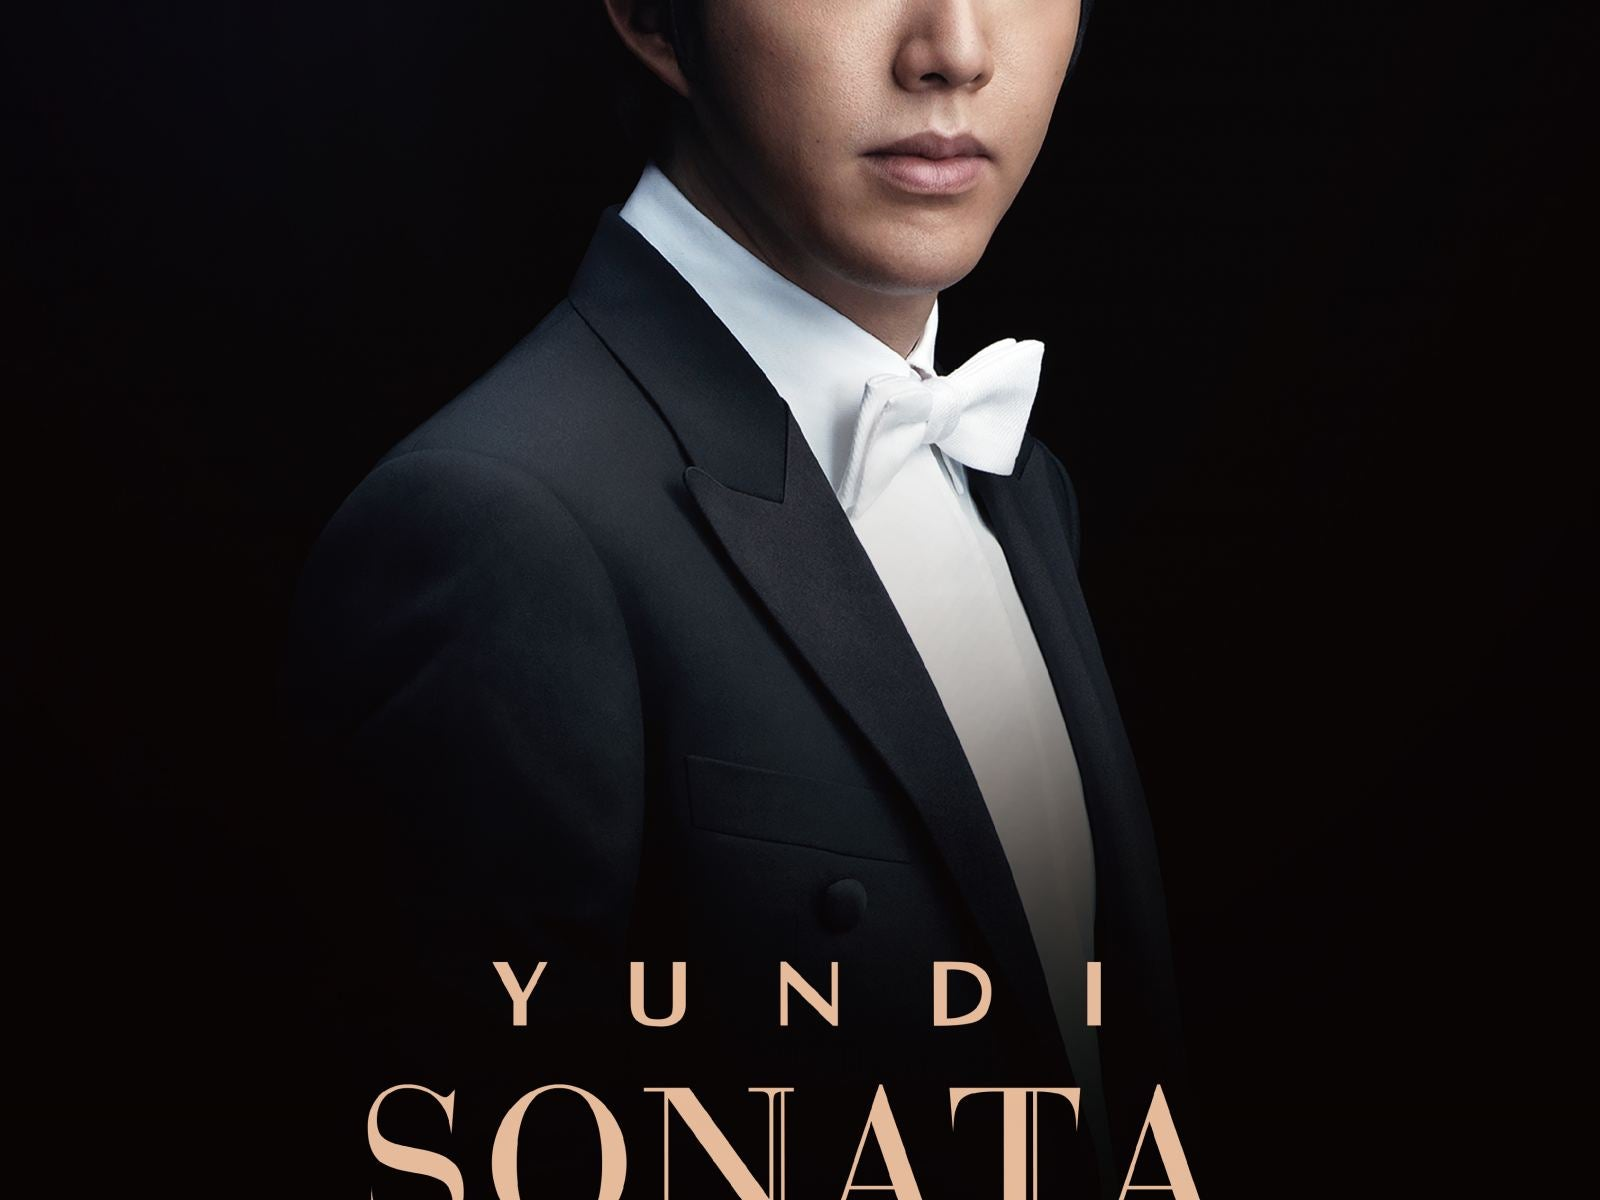 Yundi · SONATA 2020 Piano Recital World Tour in Los Angeles